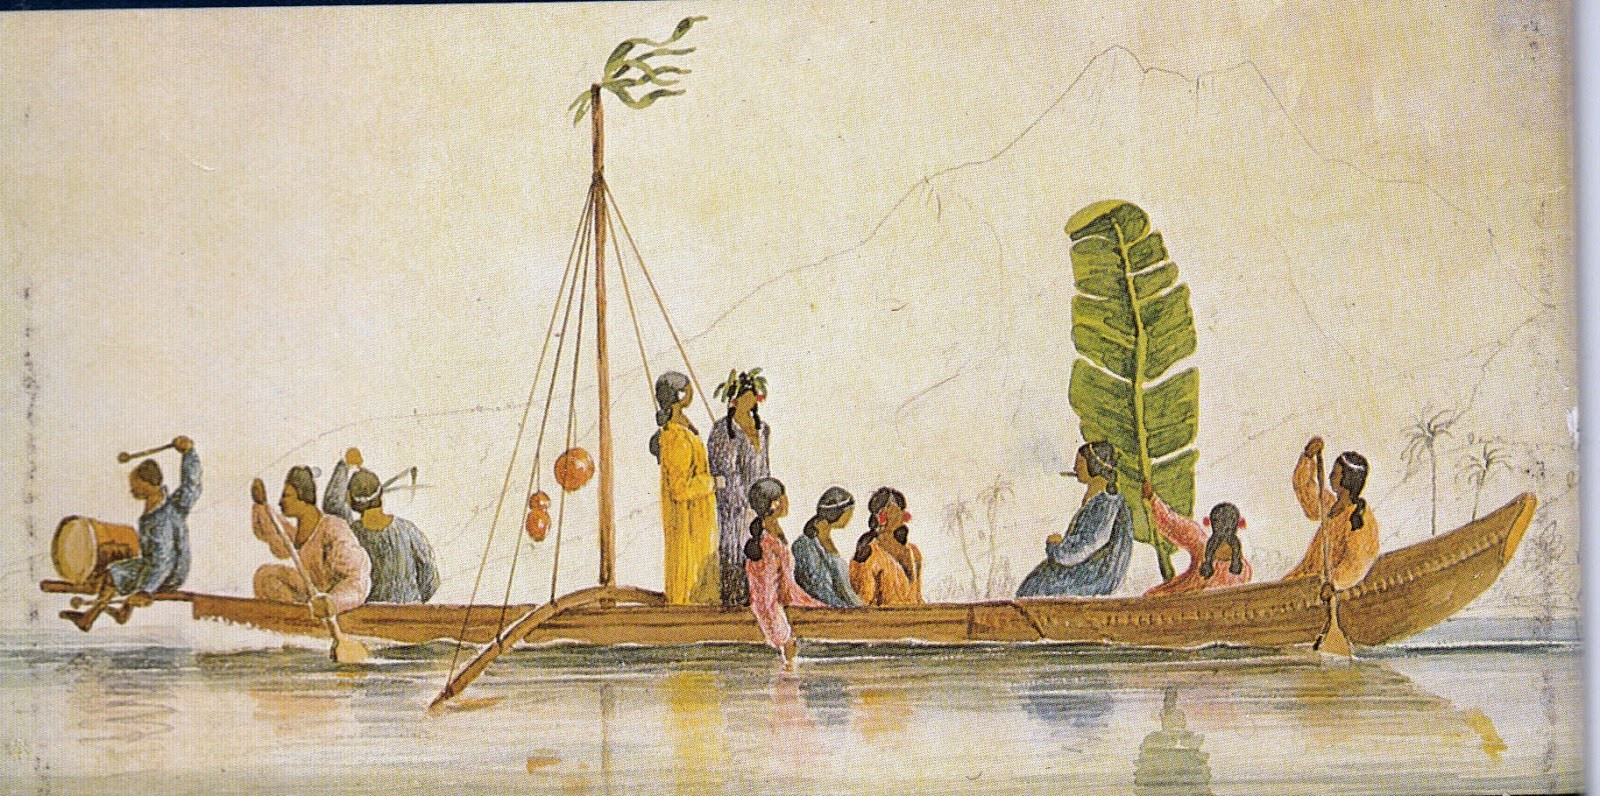 sewn canoe, Society Islands